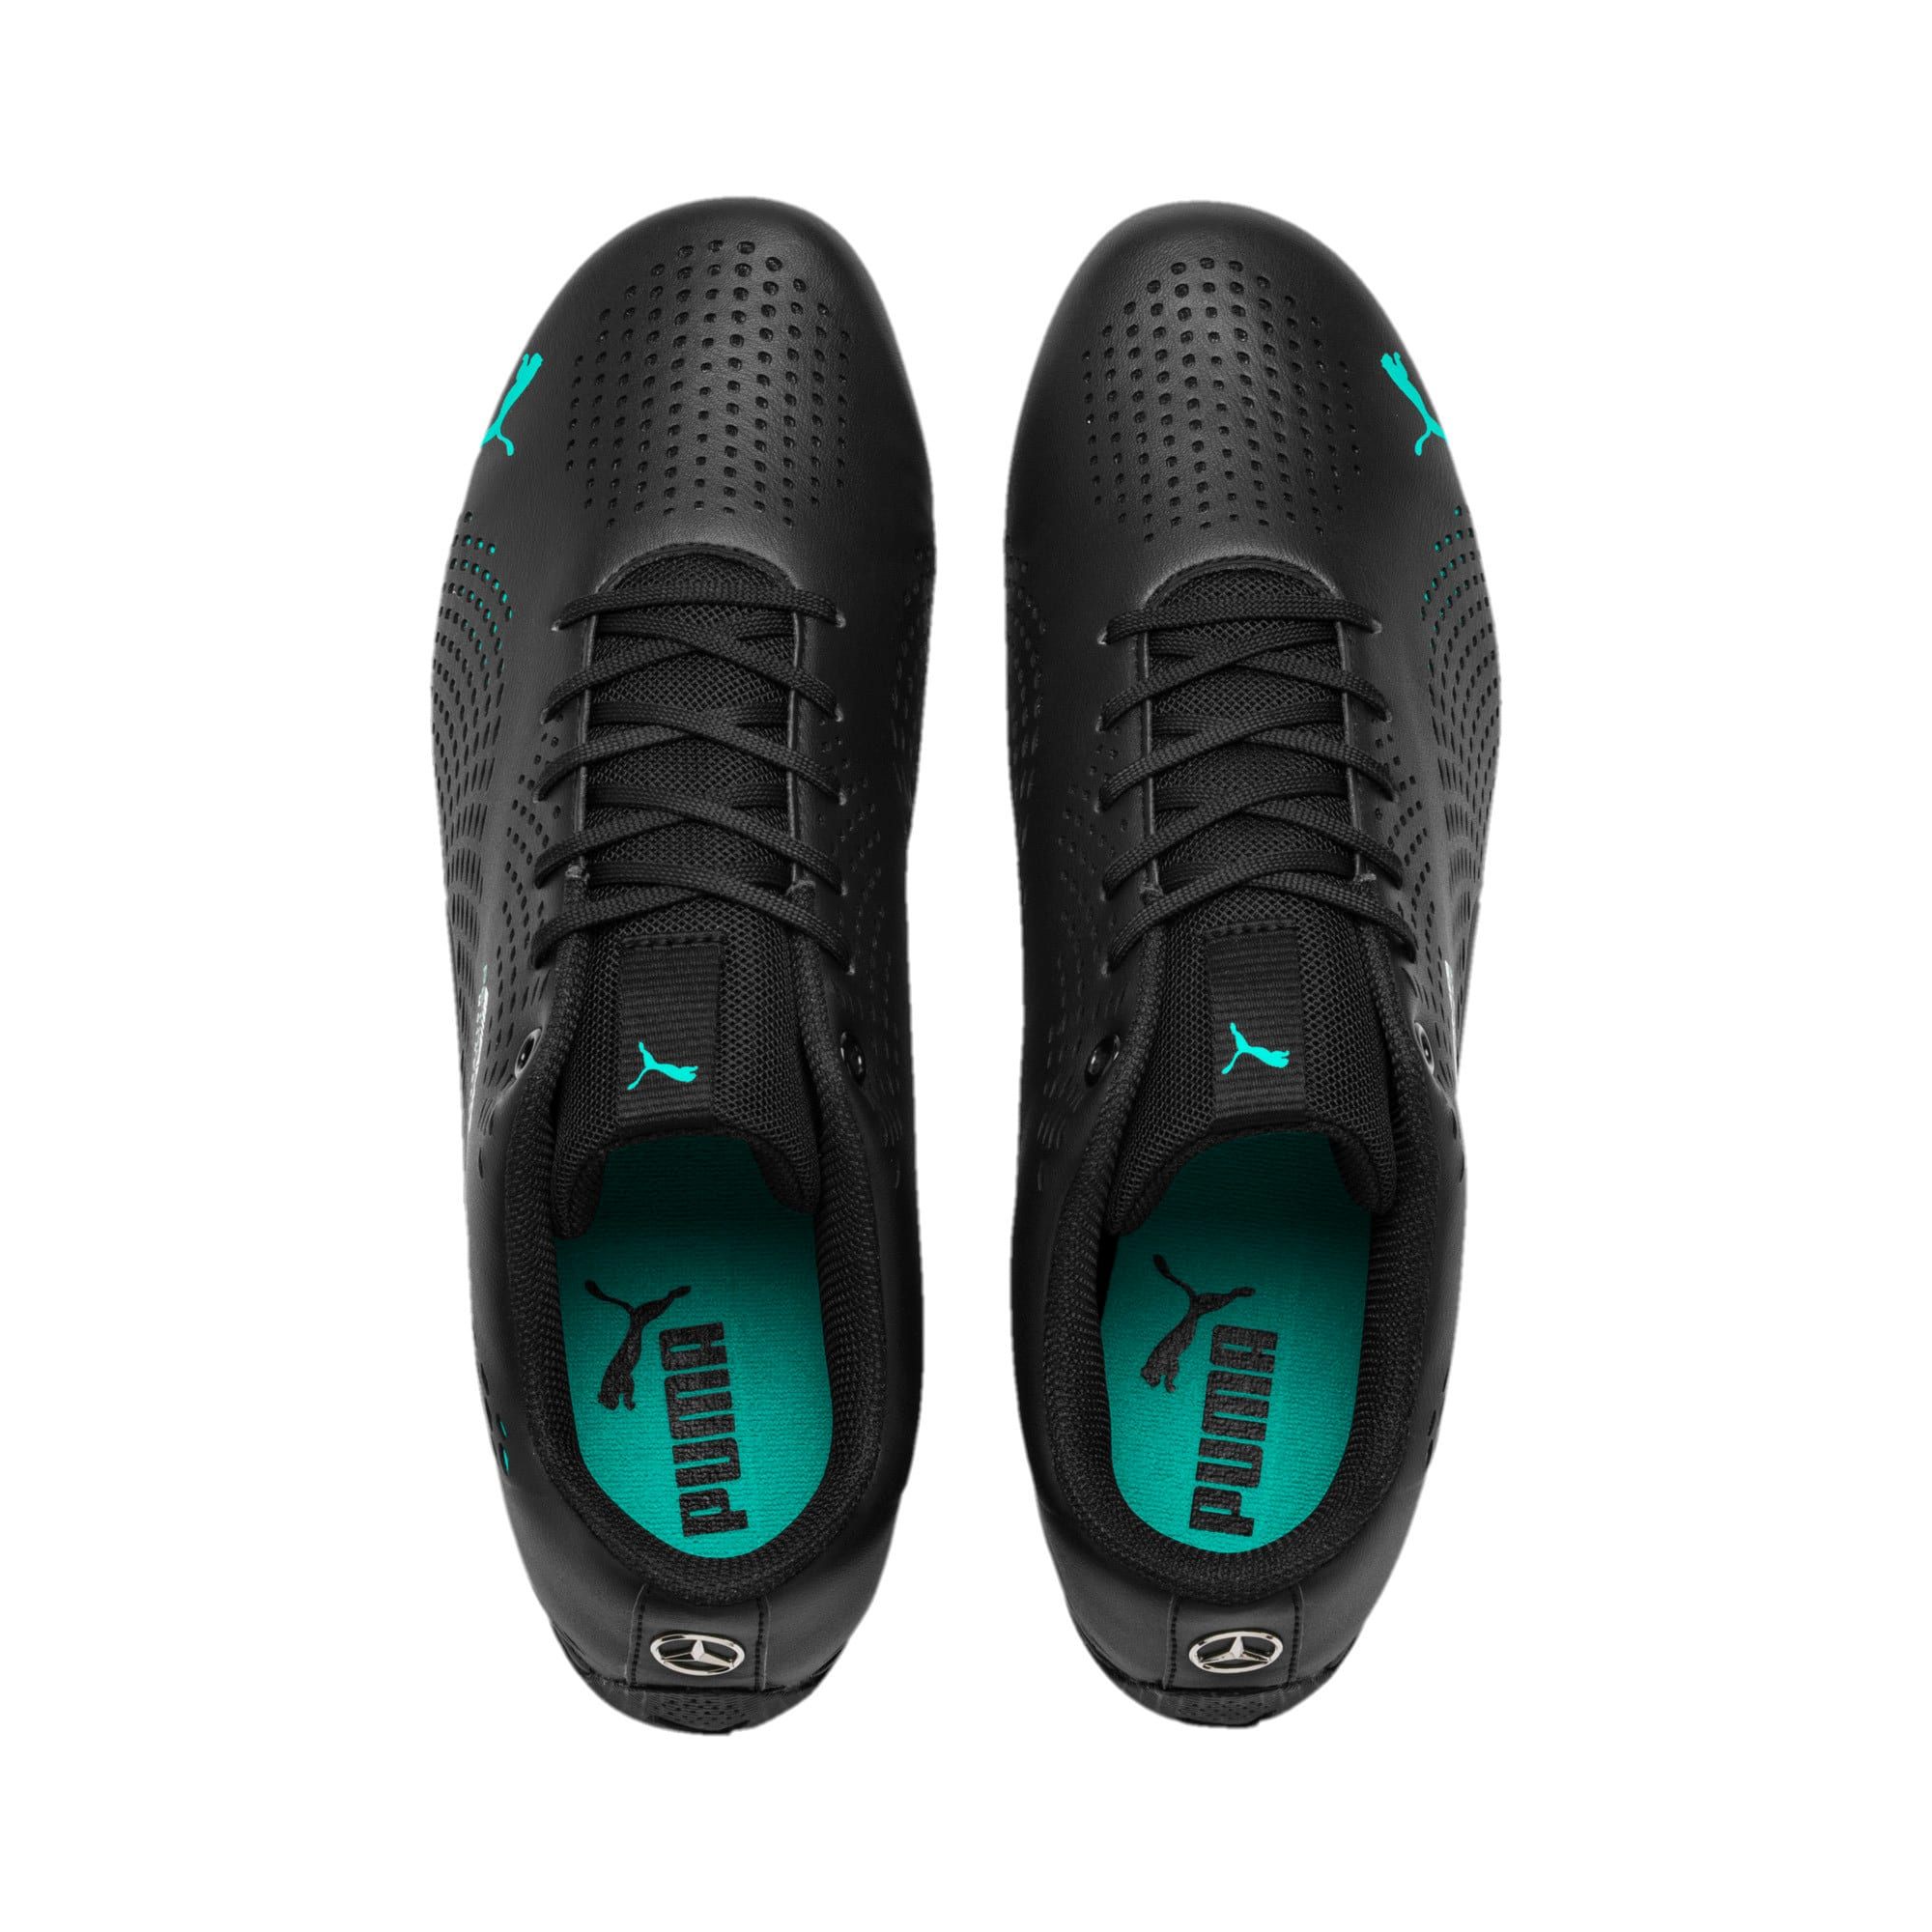 Thumbnail 7 of Mercedes AMG Petronas Drift Cat 5 Ultra II Shoes, Puma Black-Spectra Green, medium